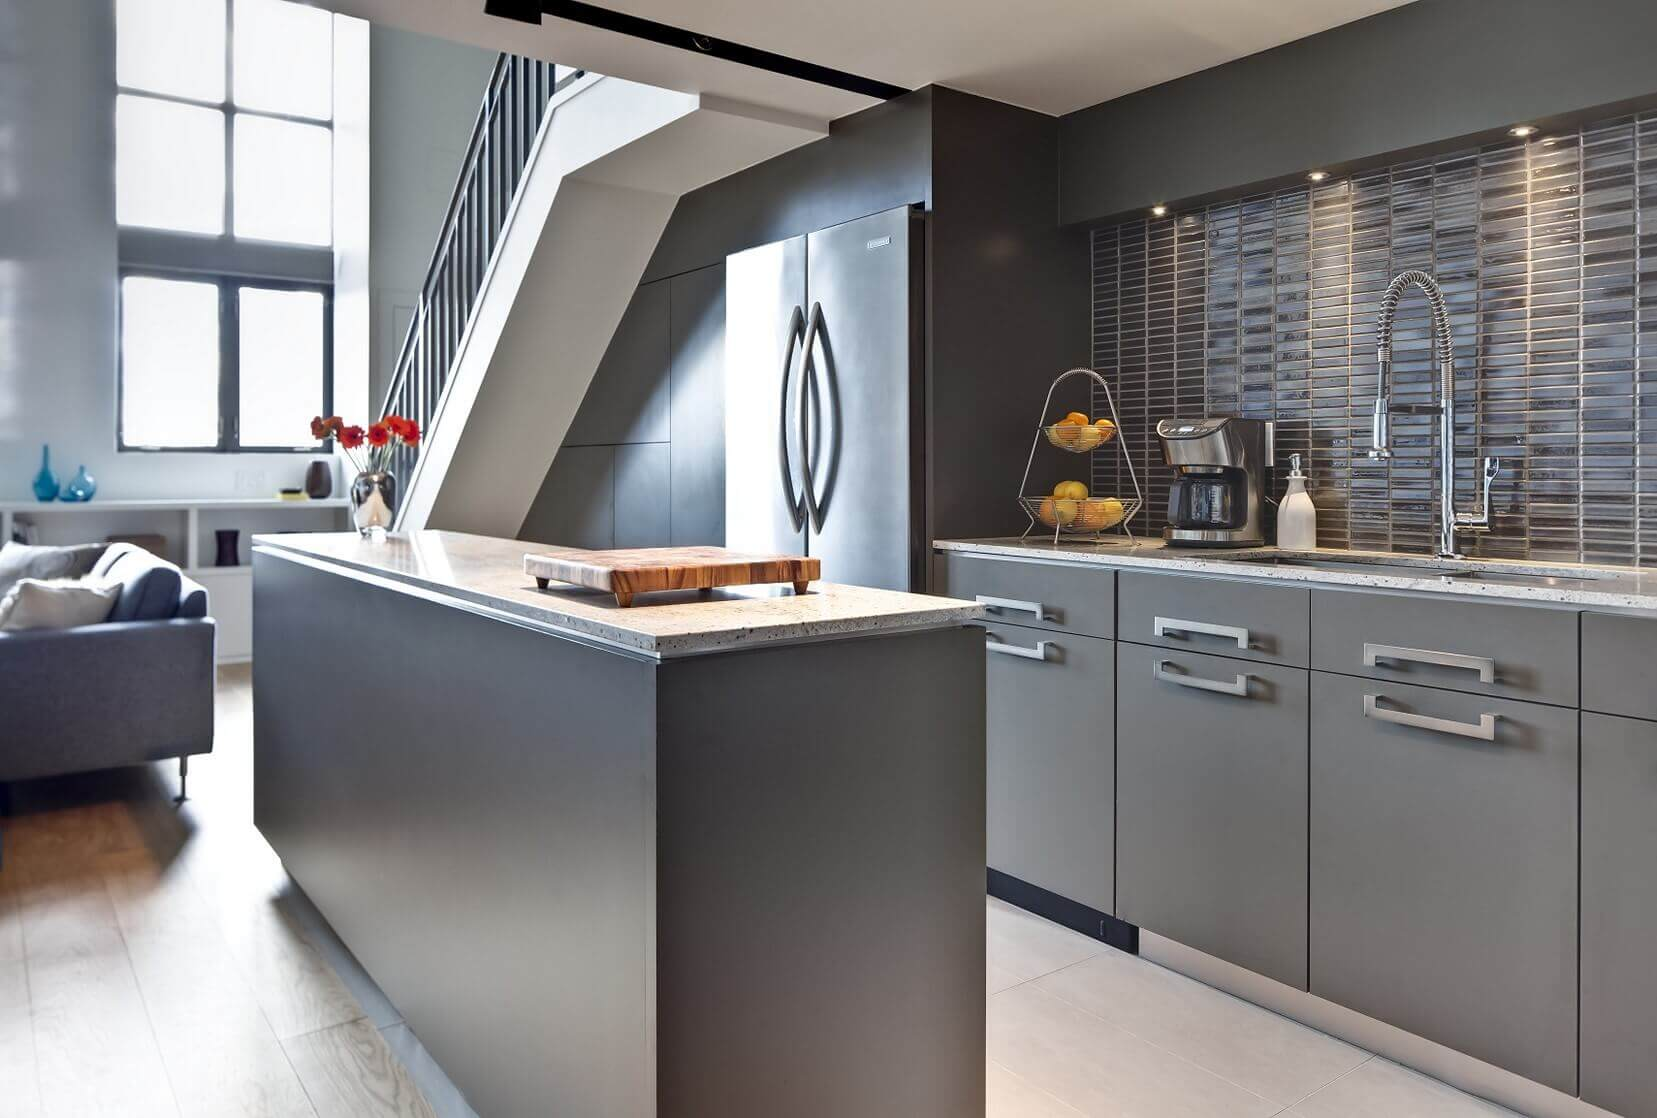 Bold contemporary gray kitchen cabinets add dimension and visual interest to this kitchen. All gray shelves, island with gray top, and stainless steel appliances complete the sleek design. The space beneath the stairs is useful for overflow storage and as a coffee bar.